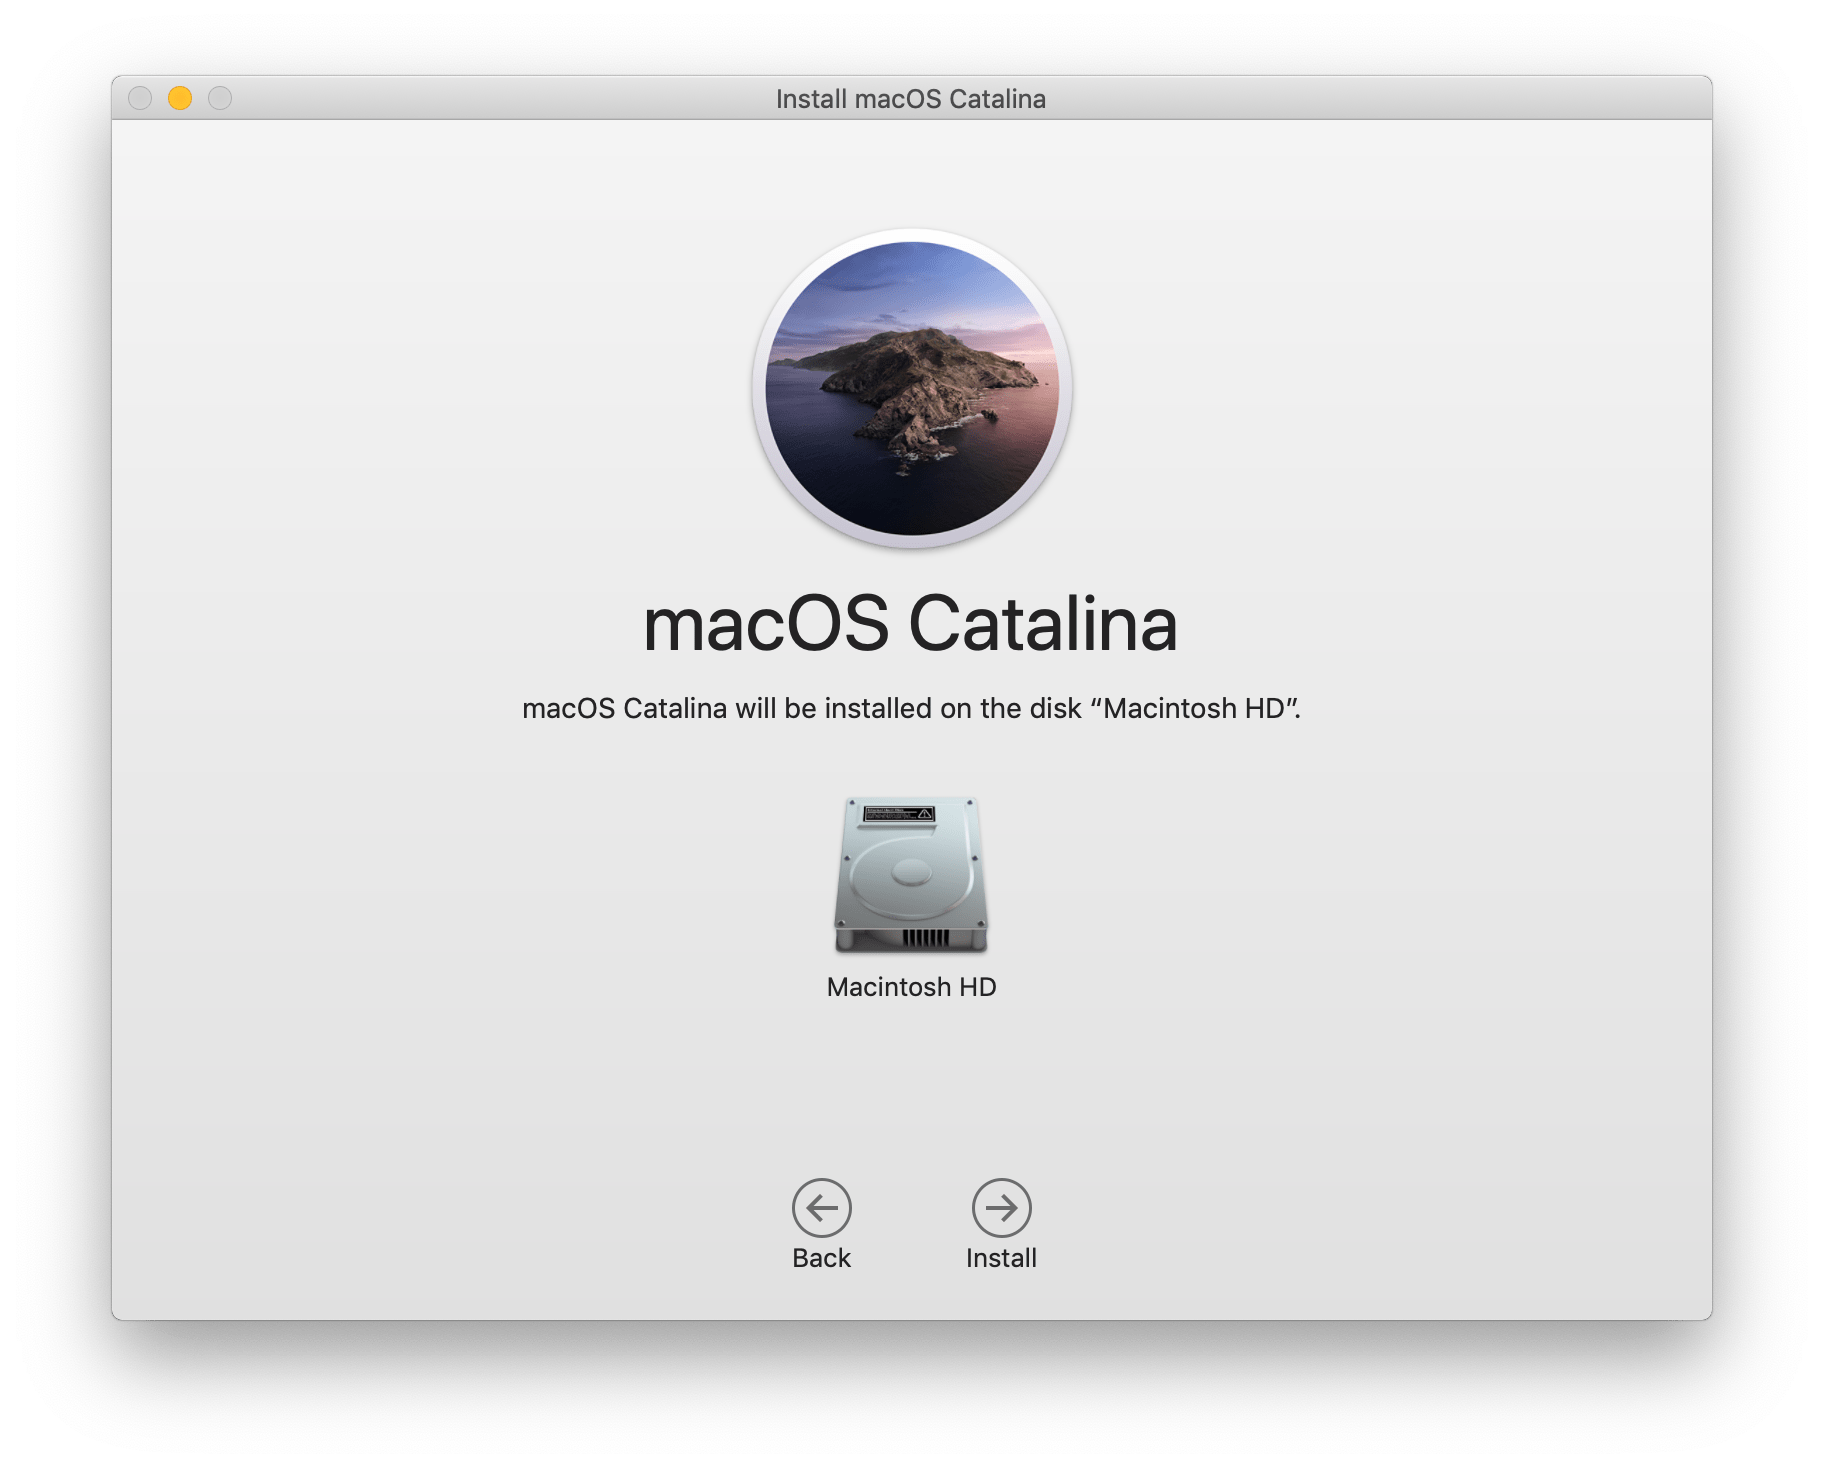 Image showing the first installation screen of the macOS Catalina installer.